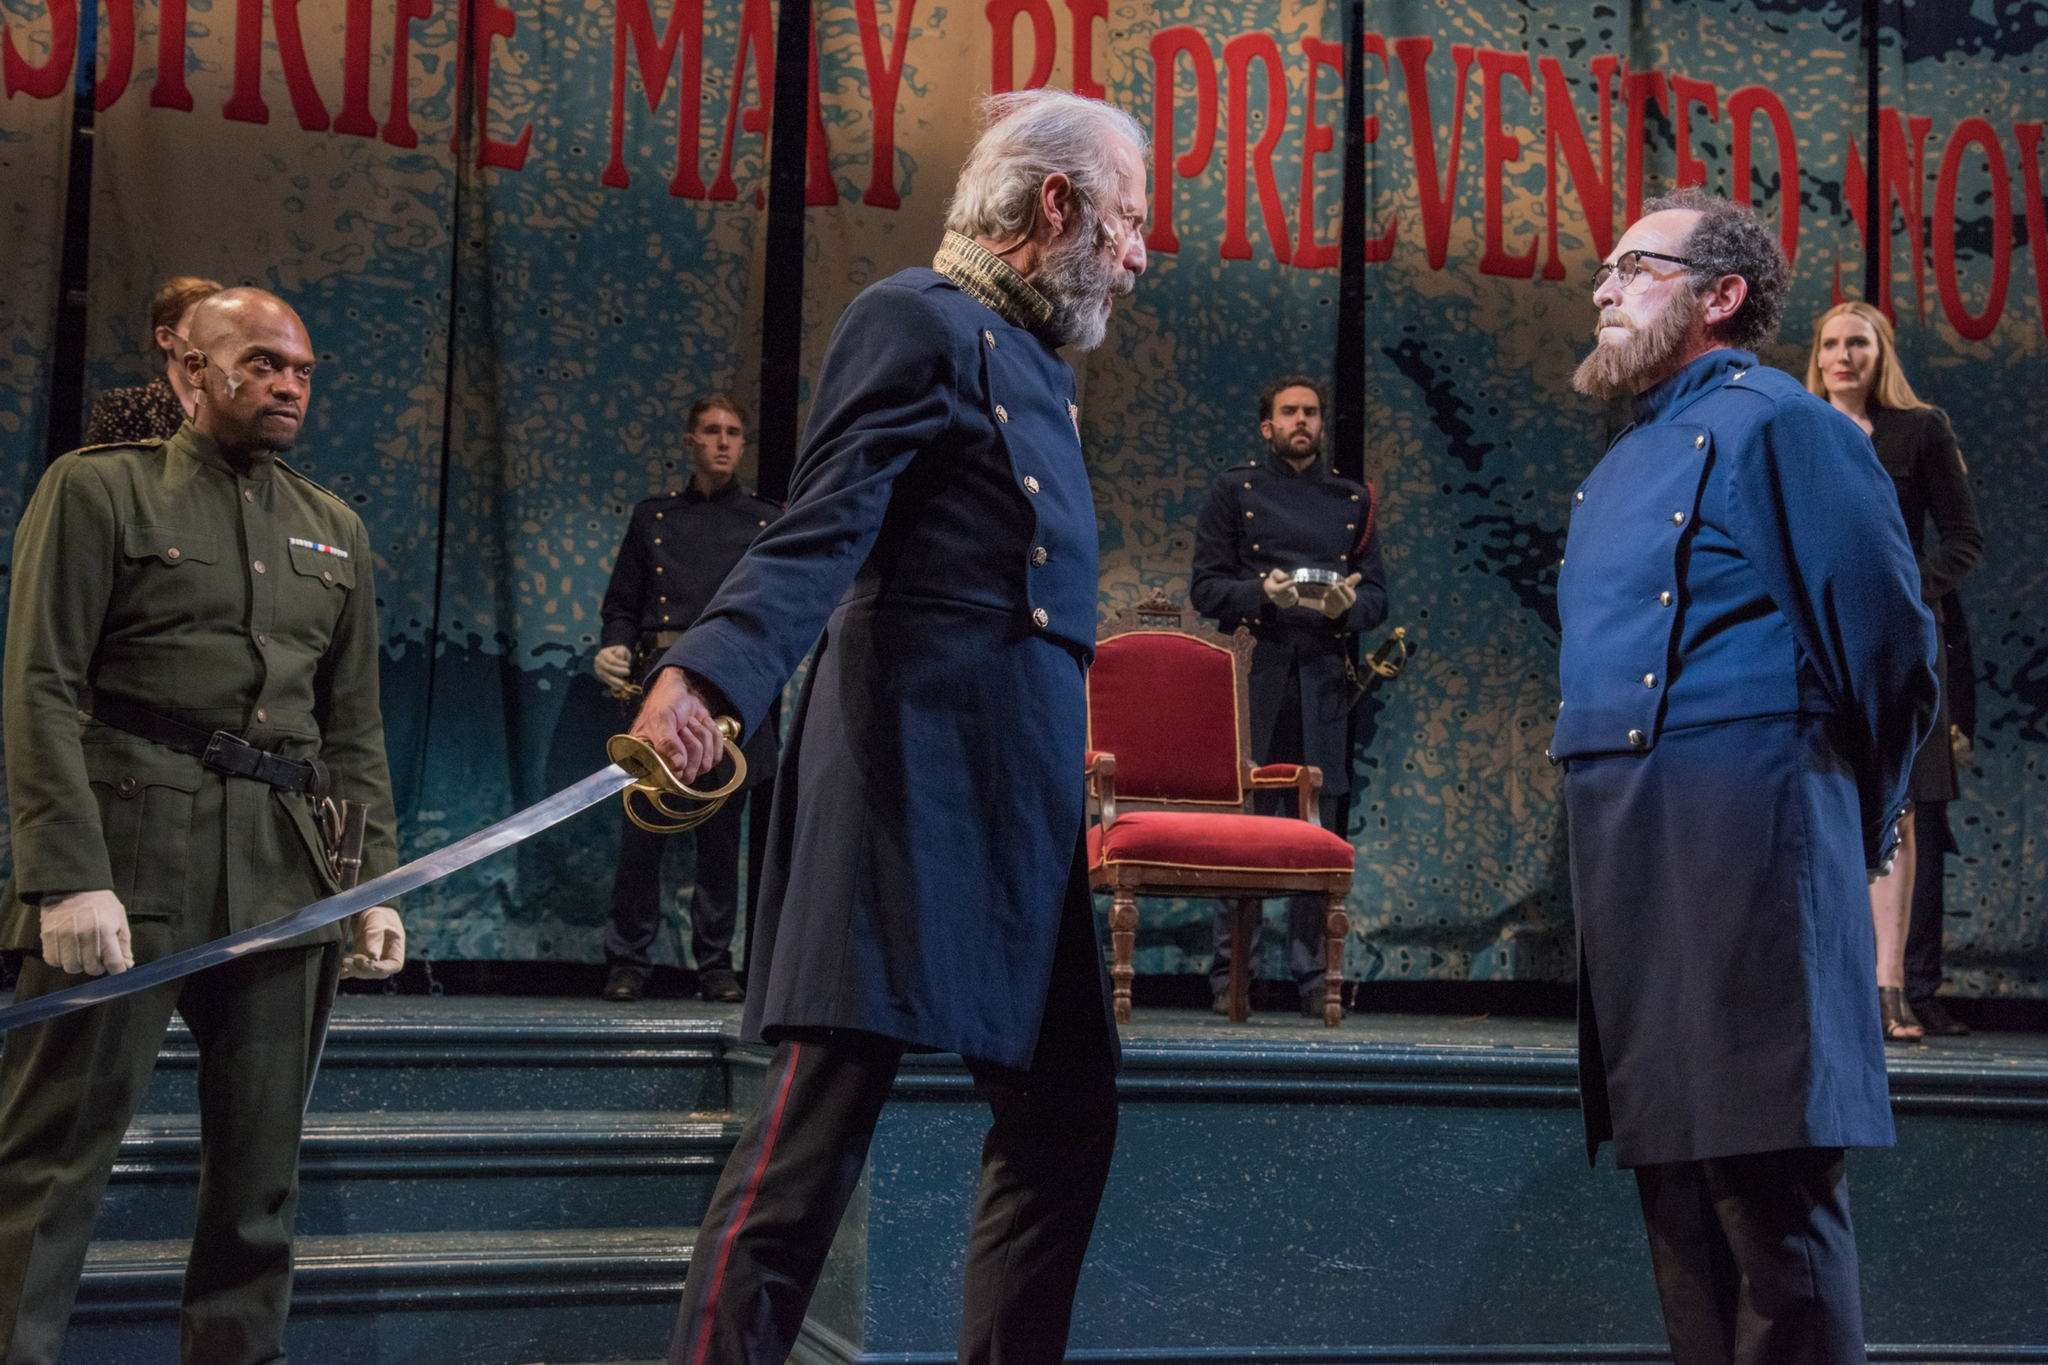 Maurice Emmanuel Parent (Duke of Cornwall), Will Lyman (King Lear), and Jeremiah Kissel (Earl of Kent) in King Lear, Shakespeare on the Common 2015-Photo by Andrew Brilliant